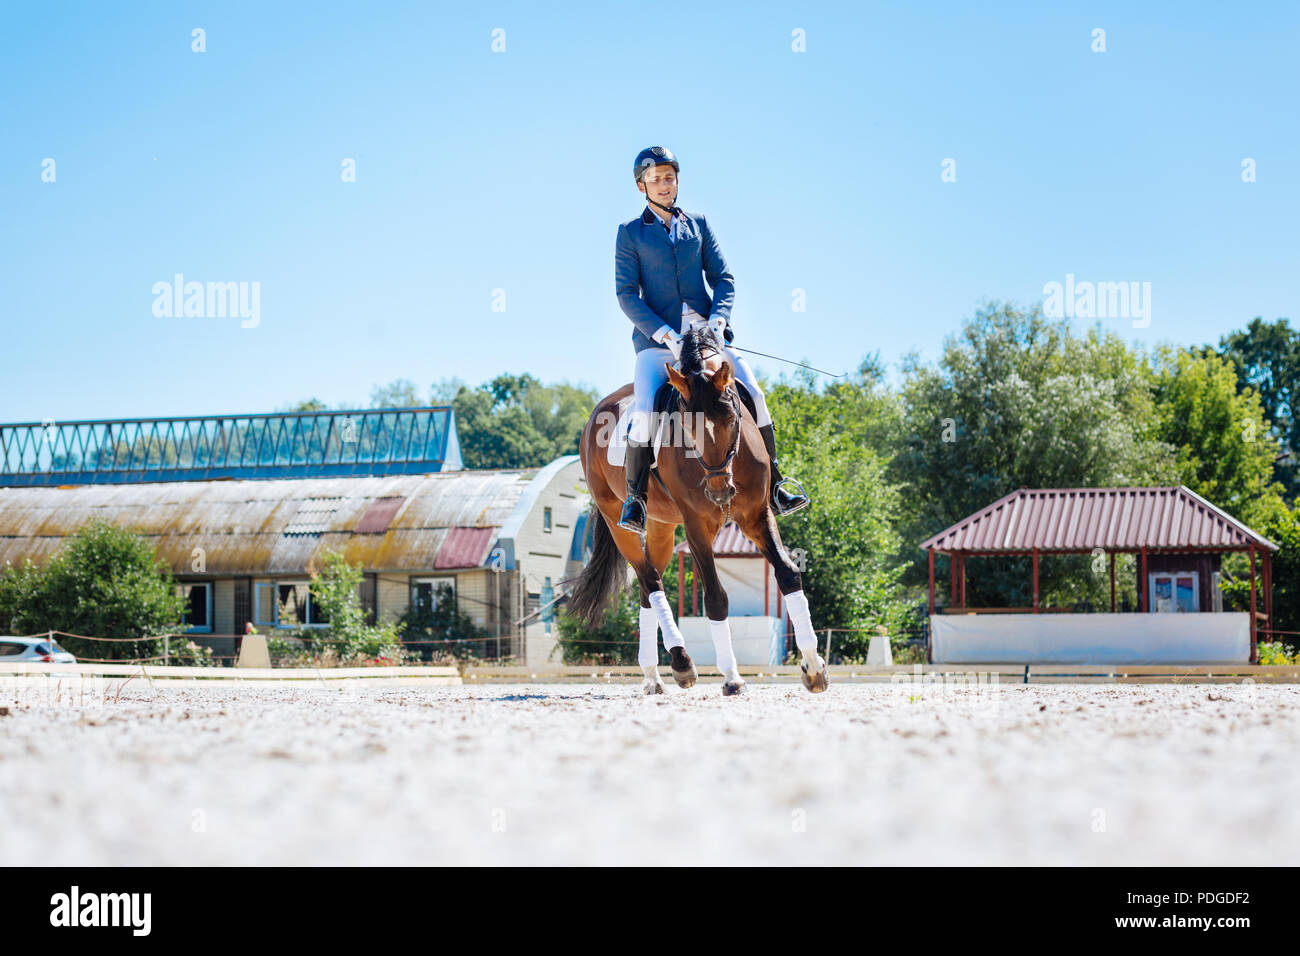 Athletic horse man feeling nice while riding his horse on weekend - Stock Image